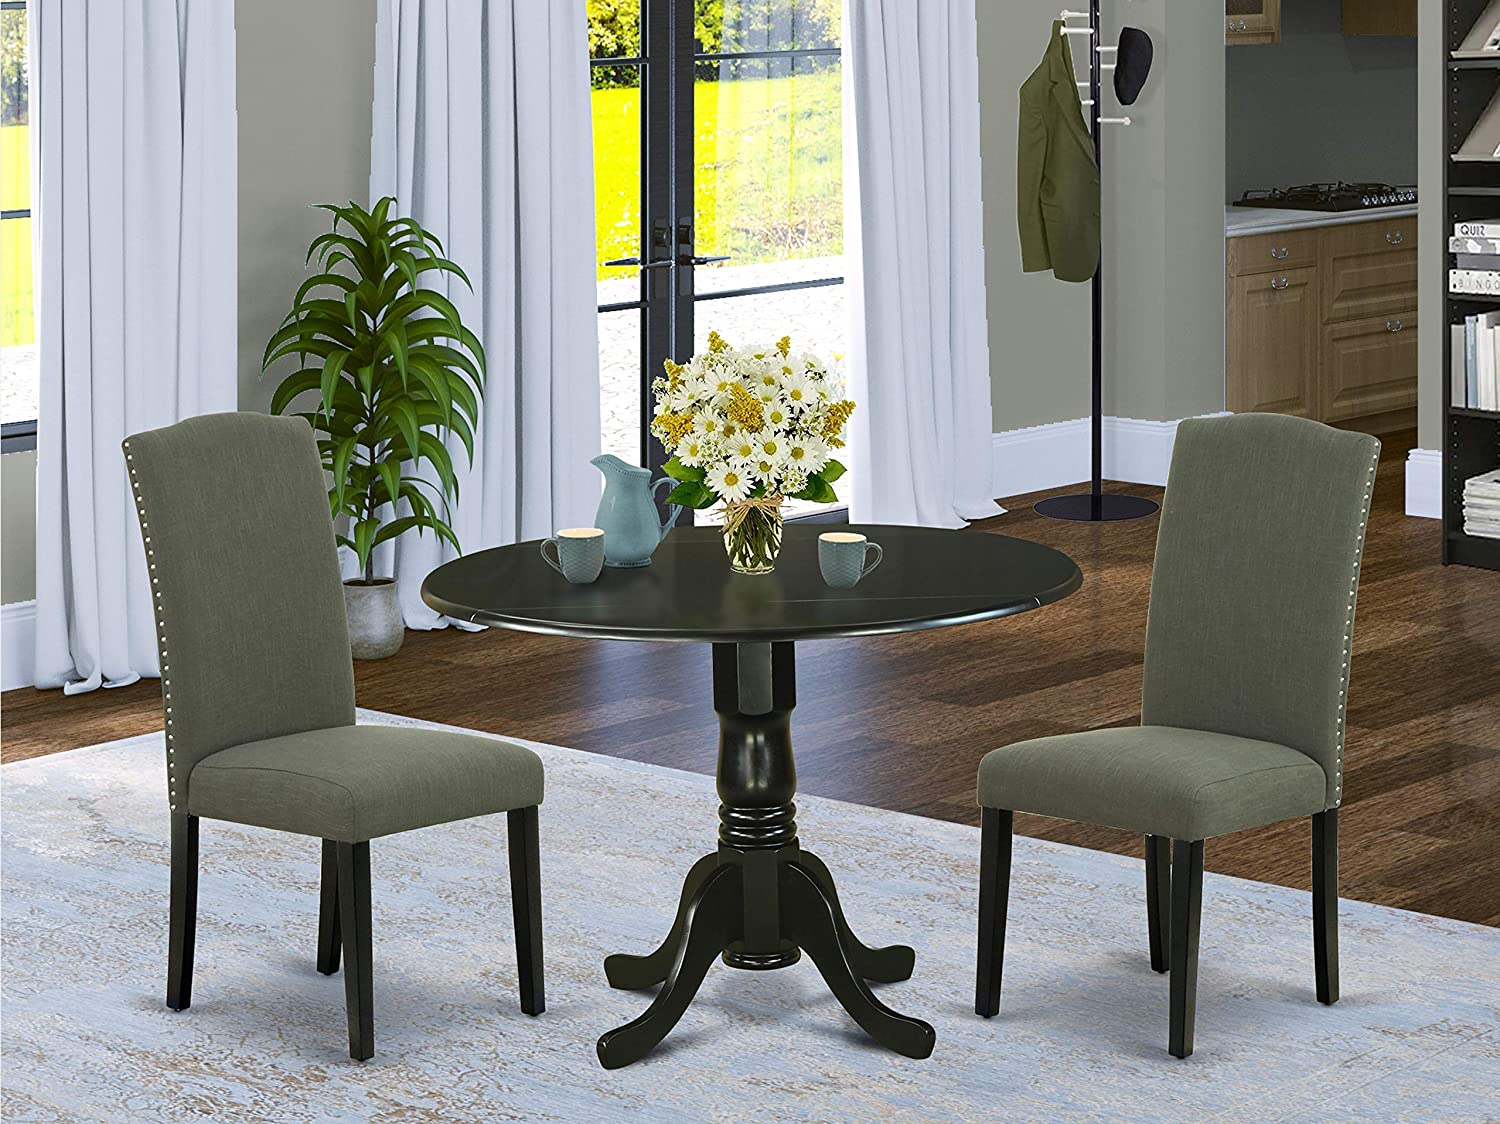 East West Furniture 3Pc Round 42 Inch Dining Table 9-Inch Drop Leaves And Two Parson Chair With Black Leg And Linen Fabric Dark Gotham Grey, 3